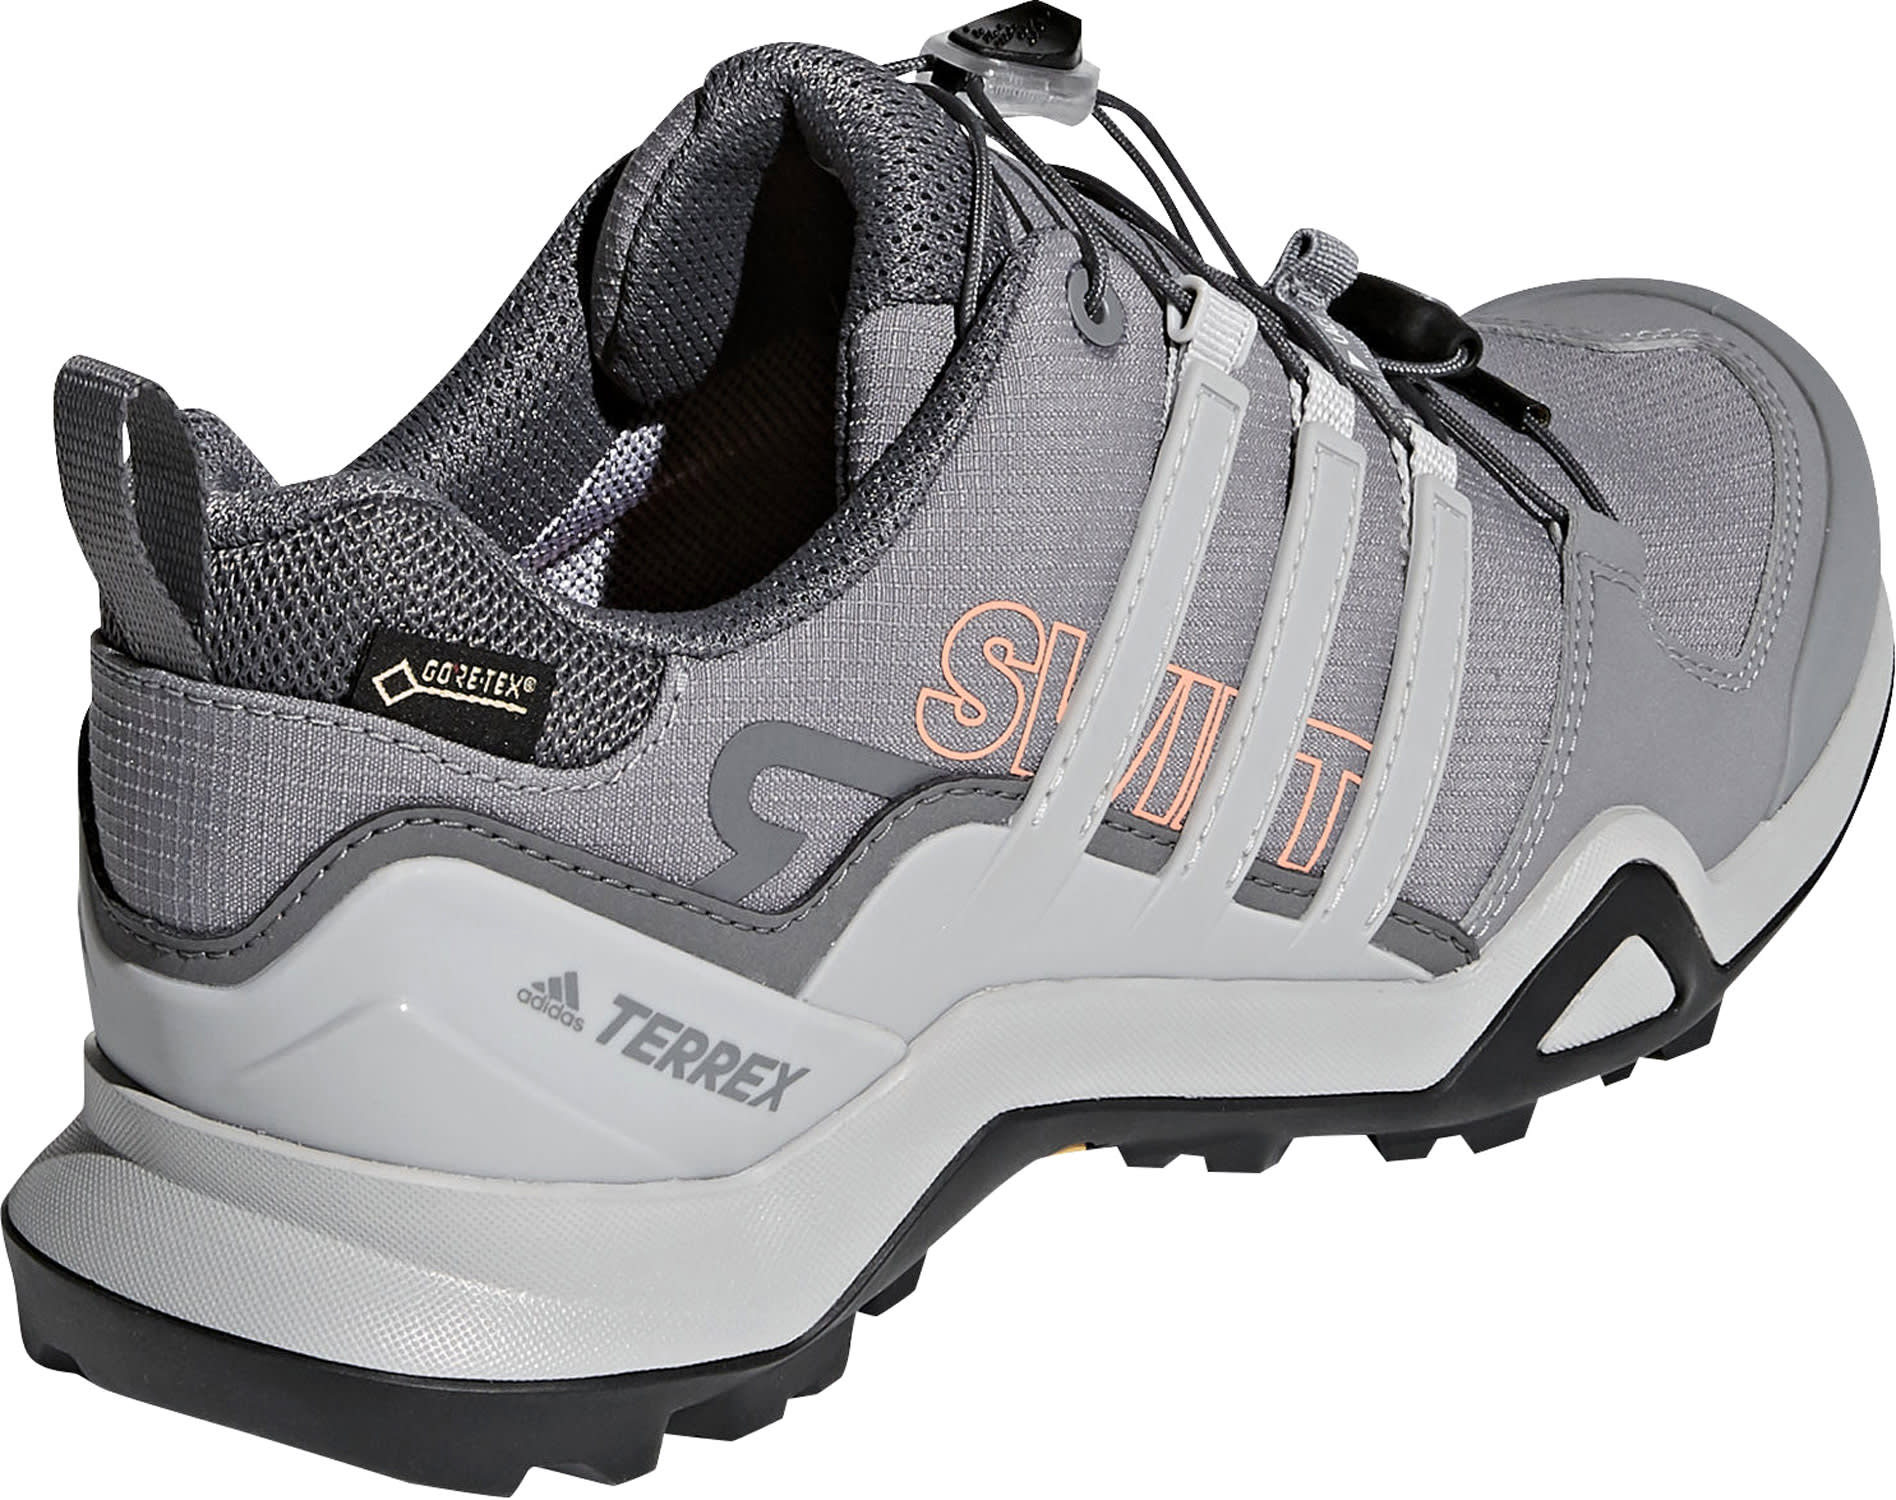 31546d35142ec Adidas Terrex Swift R2 GTX Hiking Shoes - thumbnail 4